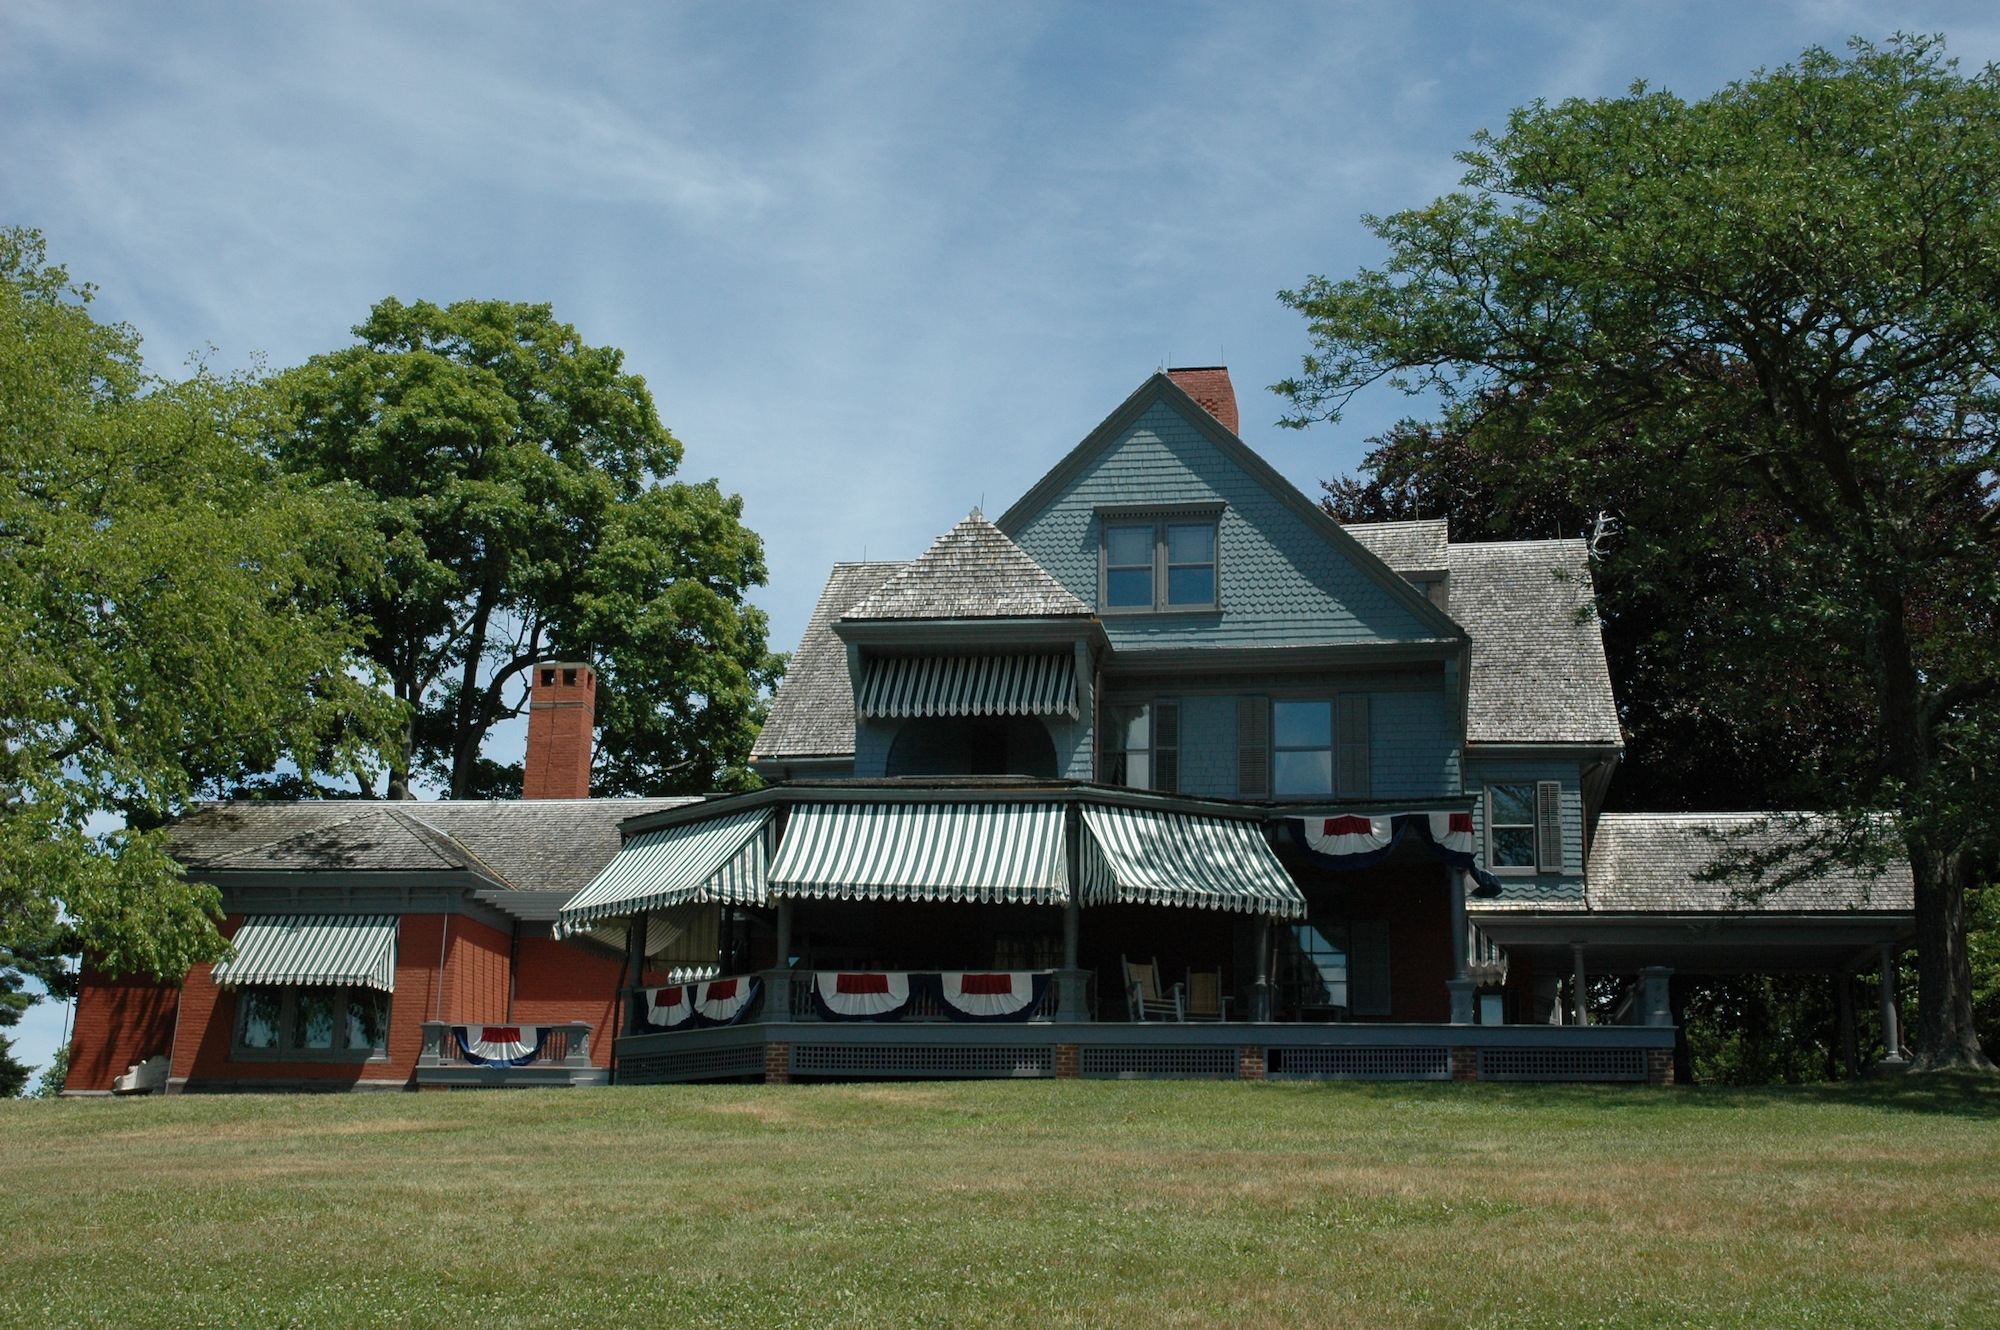 Front of Theodore Roosevelt House. image: sagamore hill national historic site